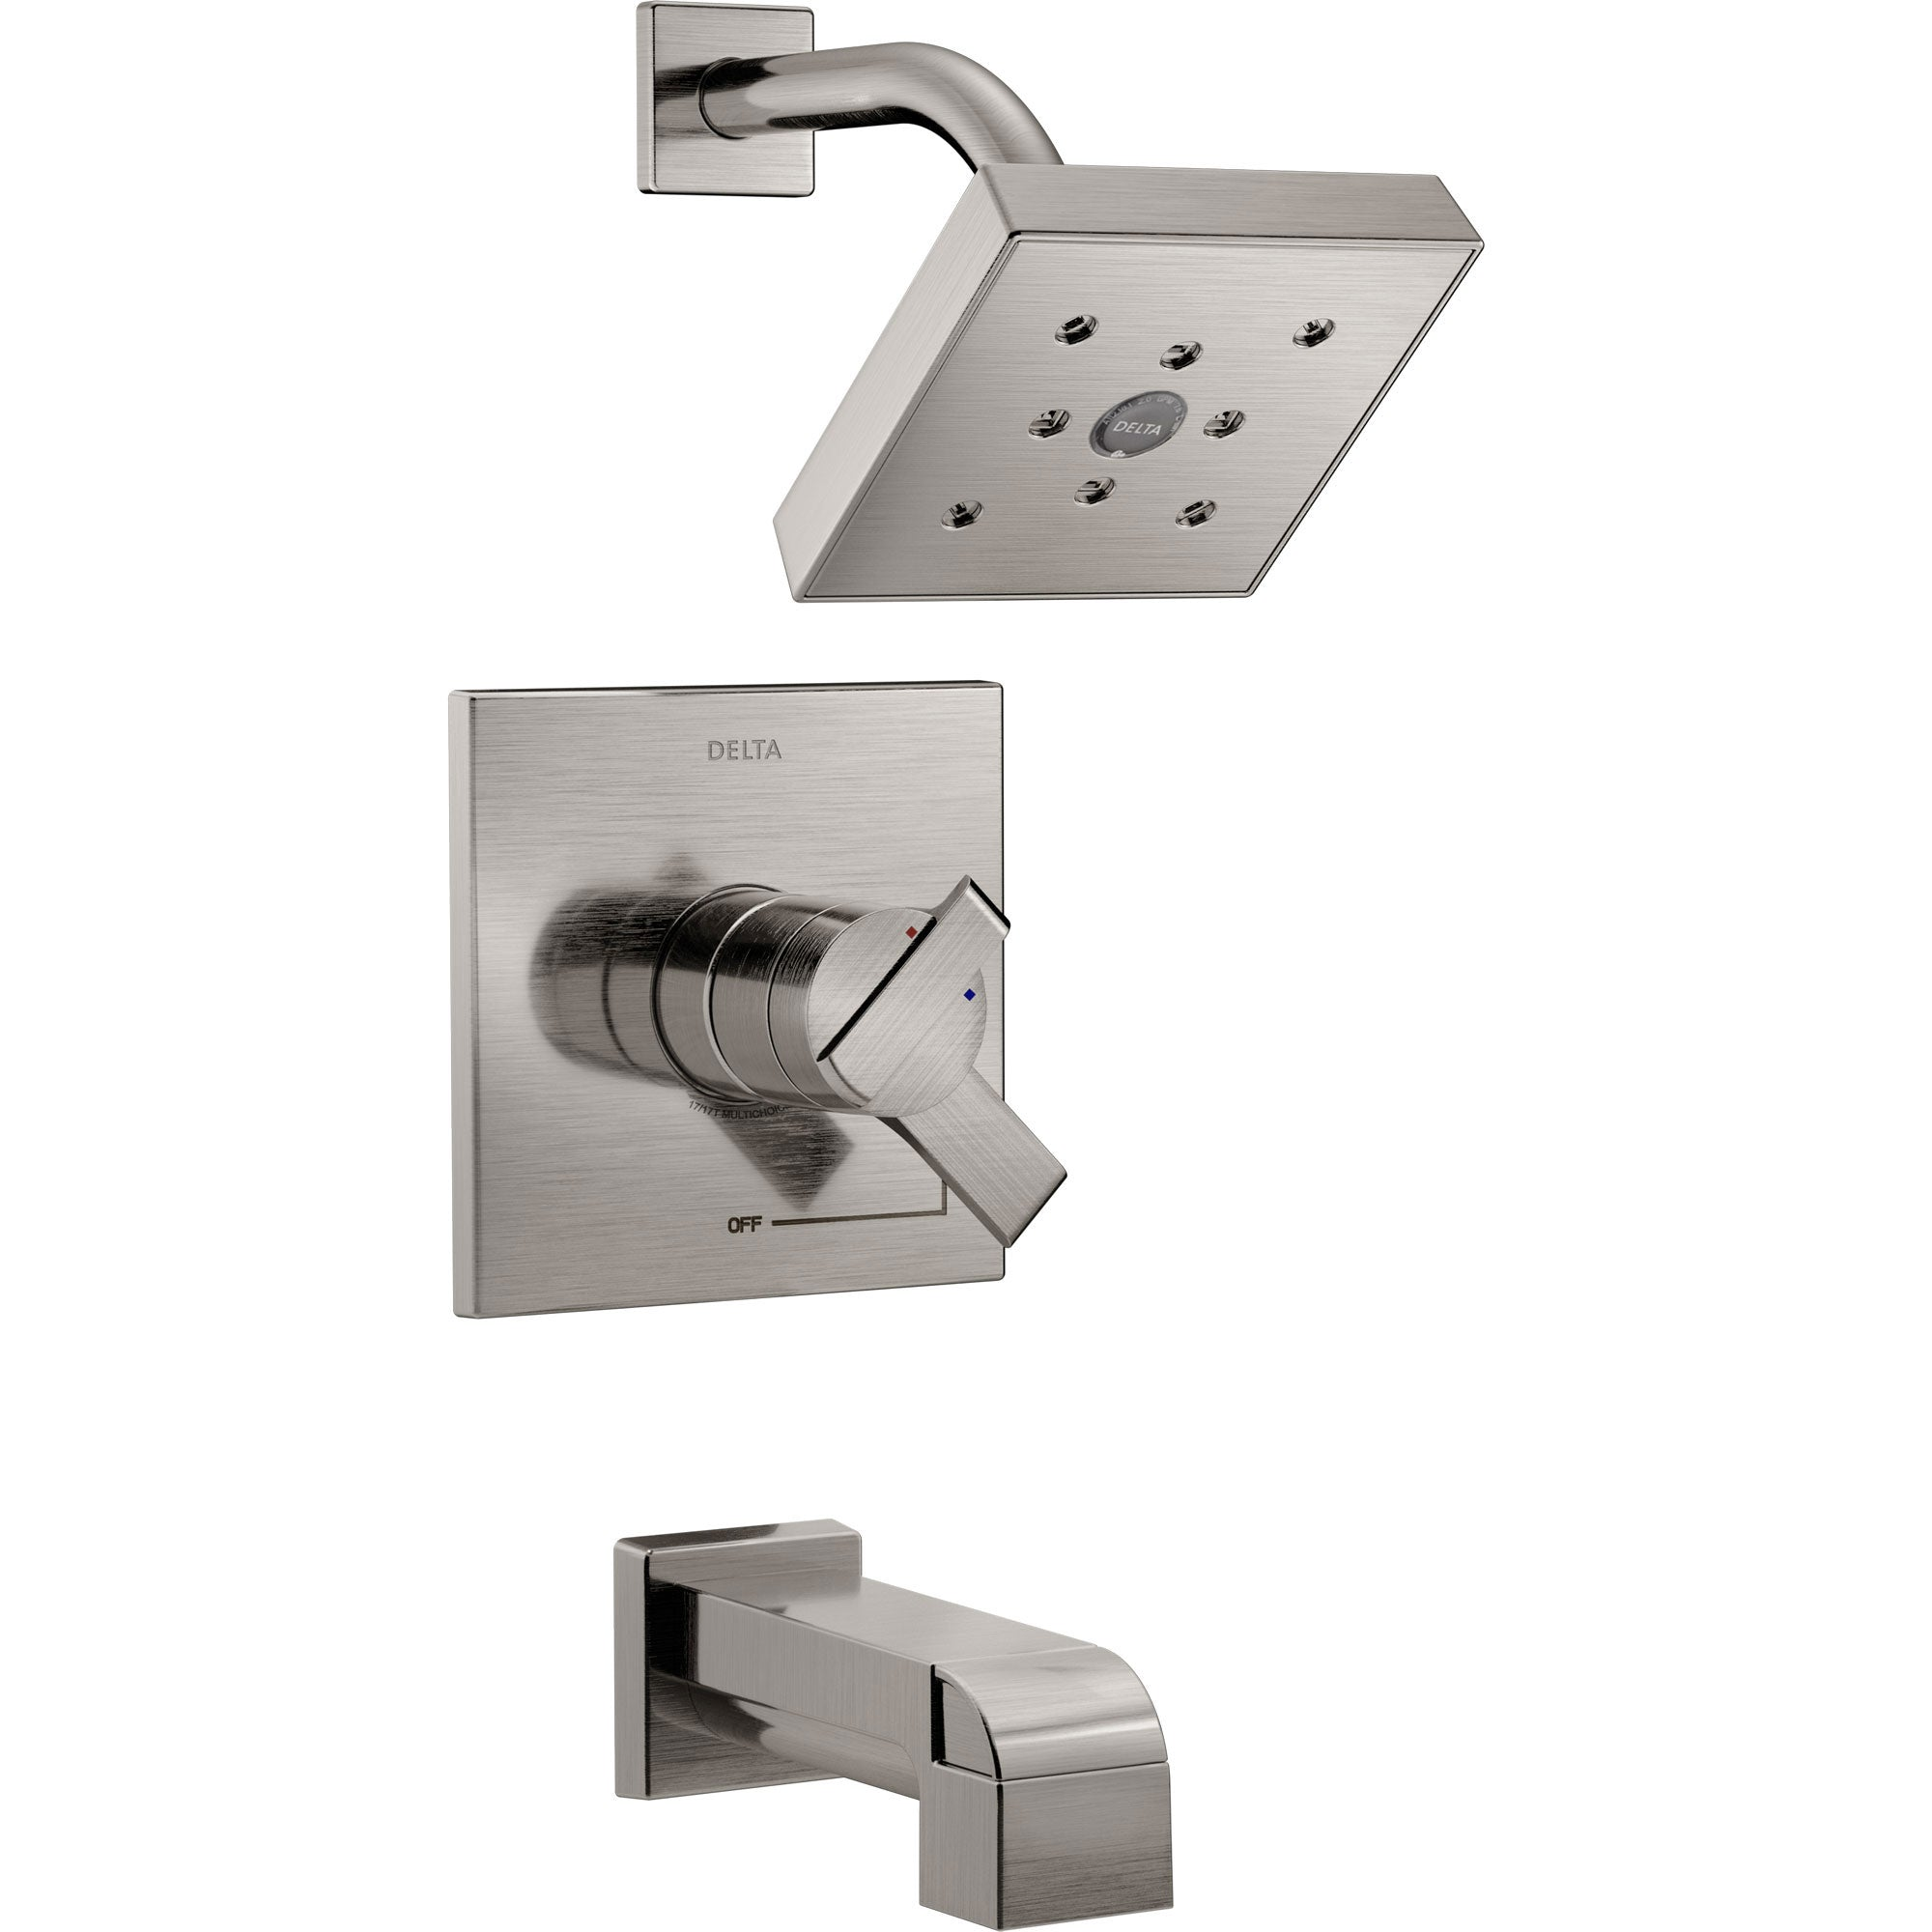 Delta Ara Modern Stainless Steel Finish H2Okinetic Tub and Shower Combination Faucet with Dual Temperature and Pressure Control INCLUDES Rough-in Valve with Stops D1113V